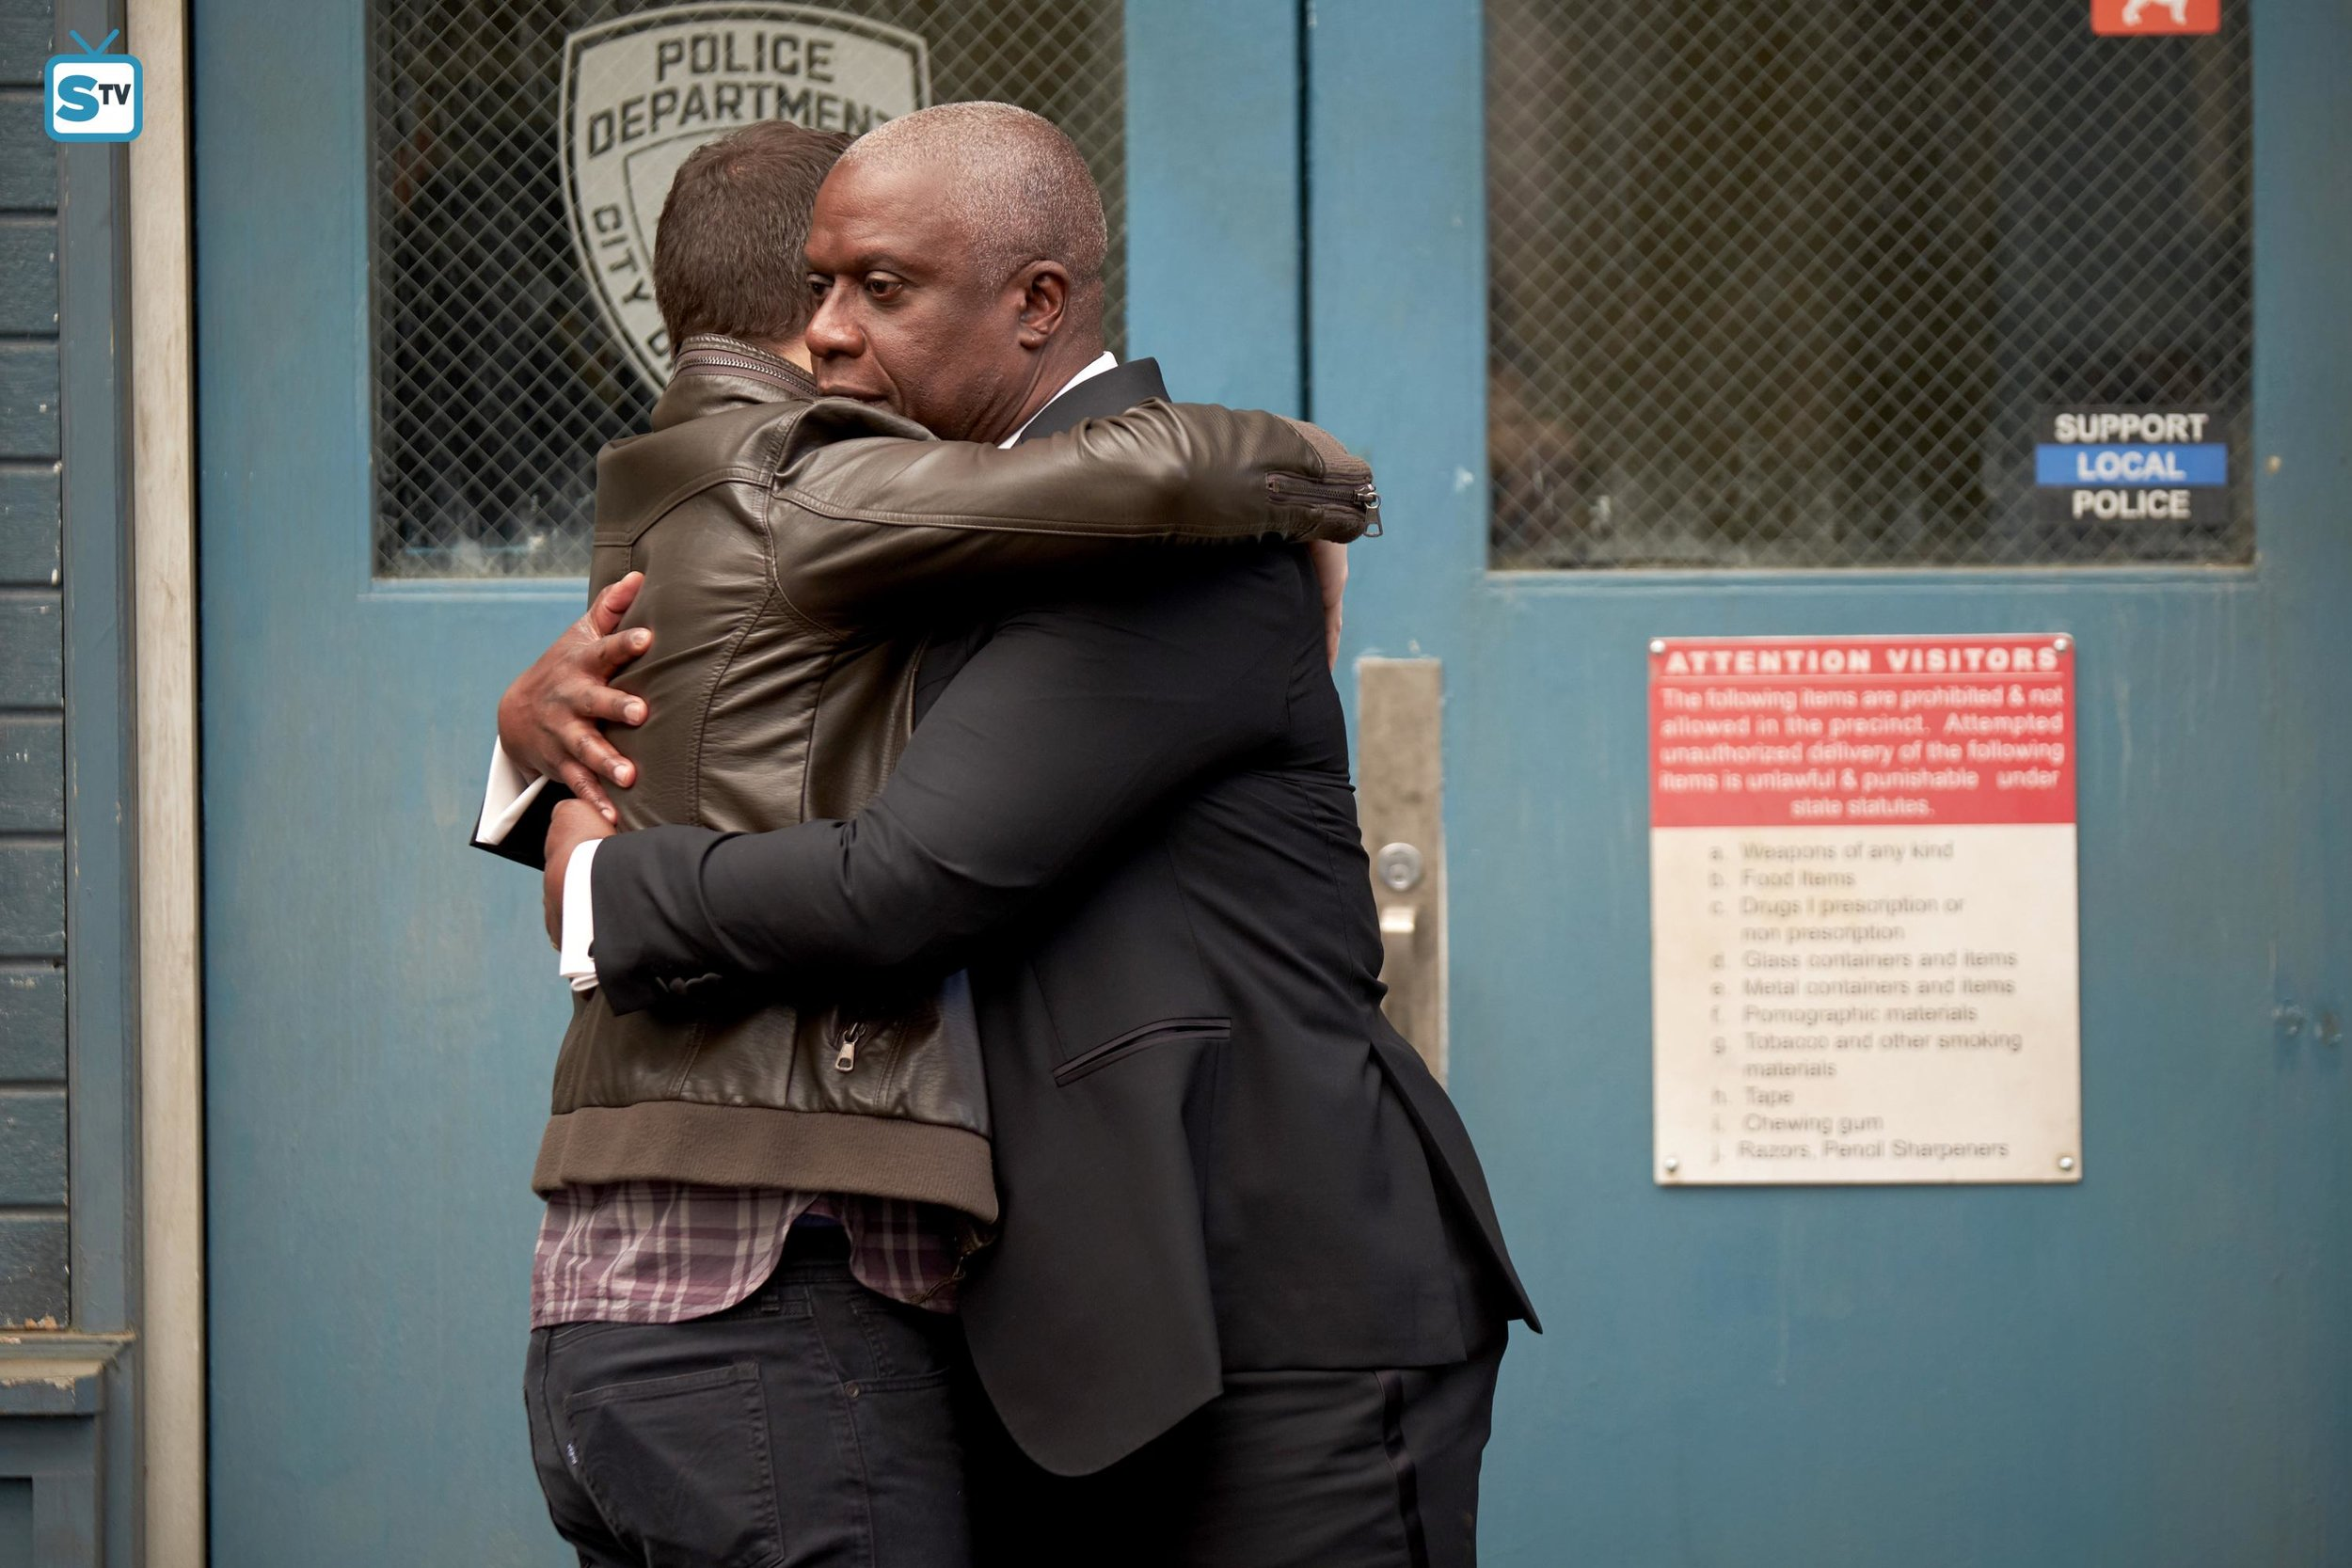 This episode was fabulous and I shouldn't complain, but why was this Jake/Holt hug cut? WHY?